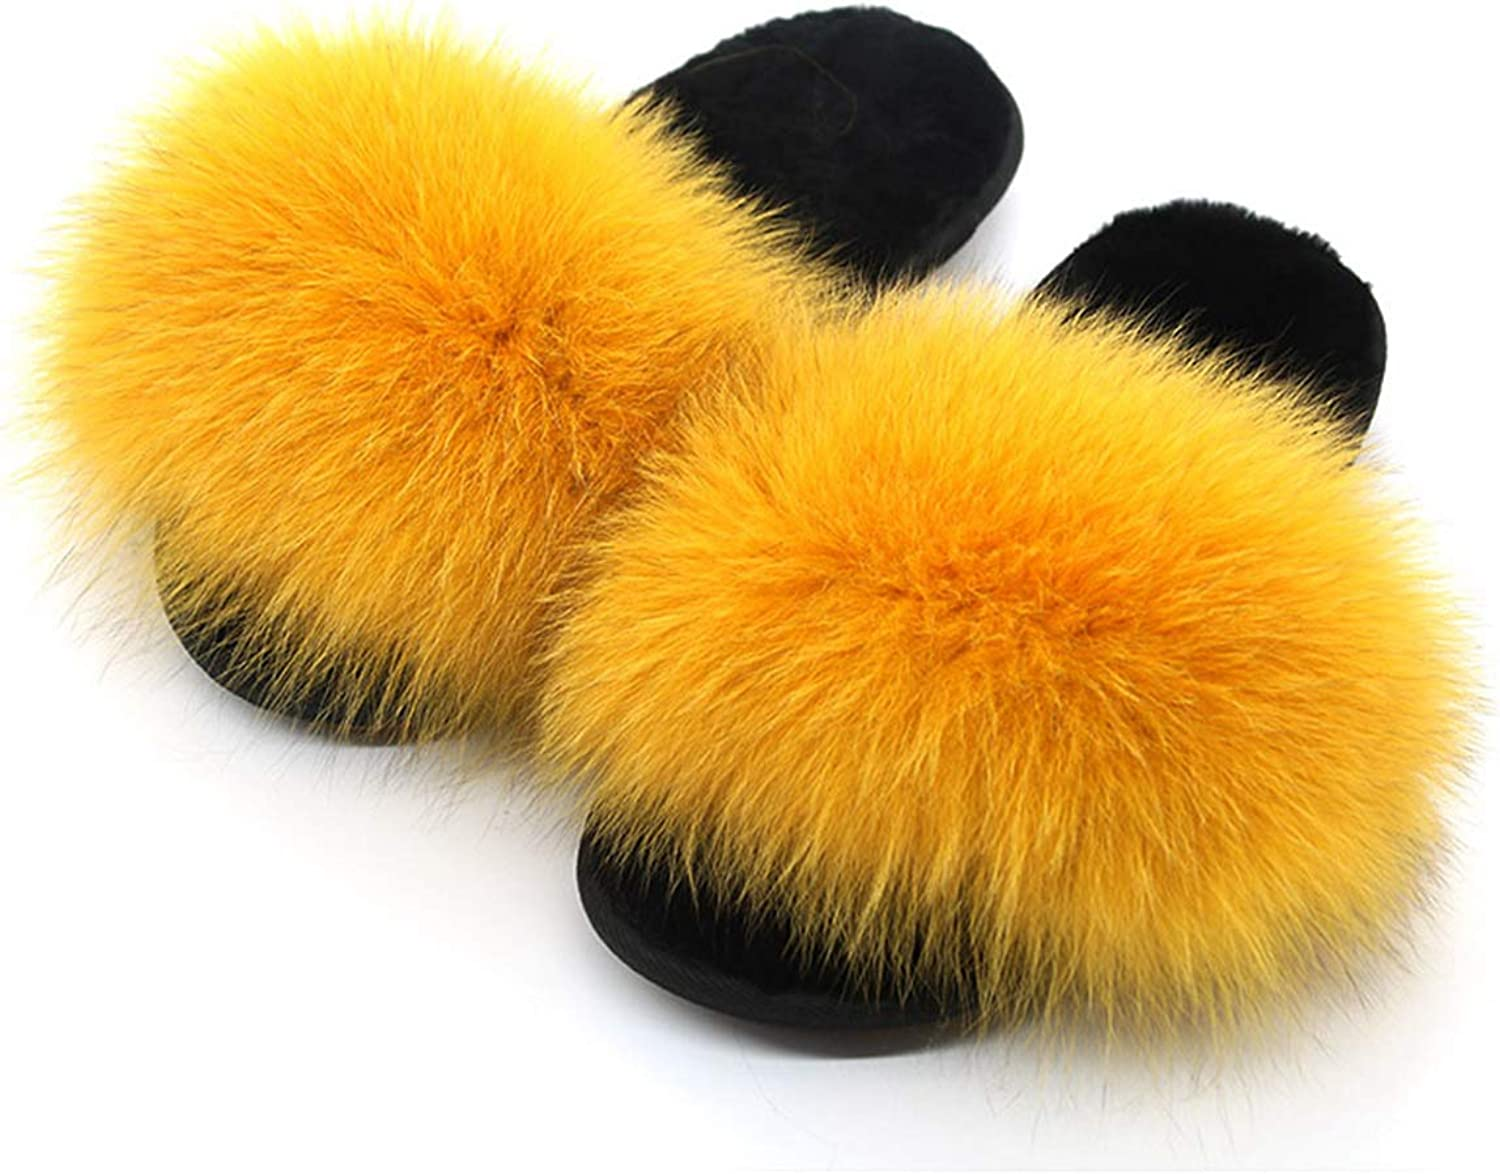 NOMIMAS Womens Wool Slippers Fluffy Slides Soft Warm Indoor Flip Flops for Woman Causal Fuzzy Plush shoes